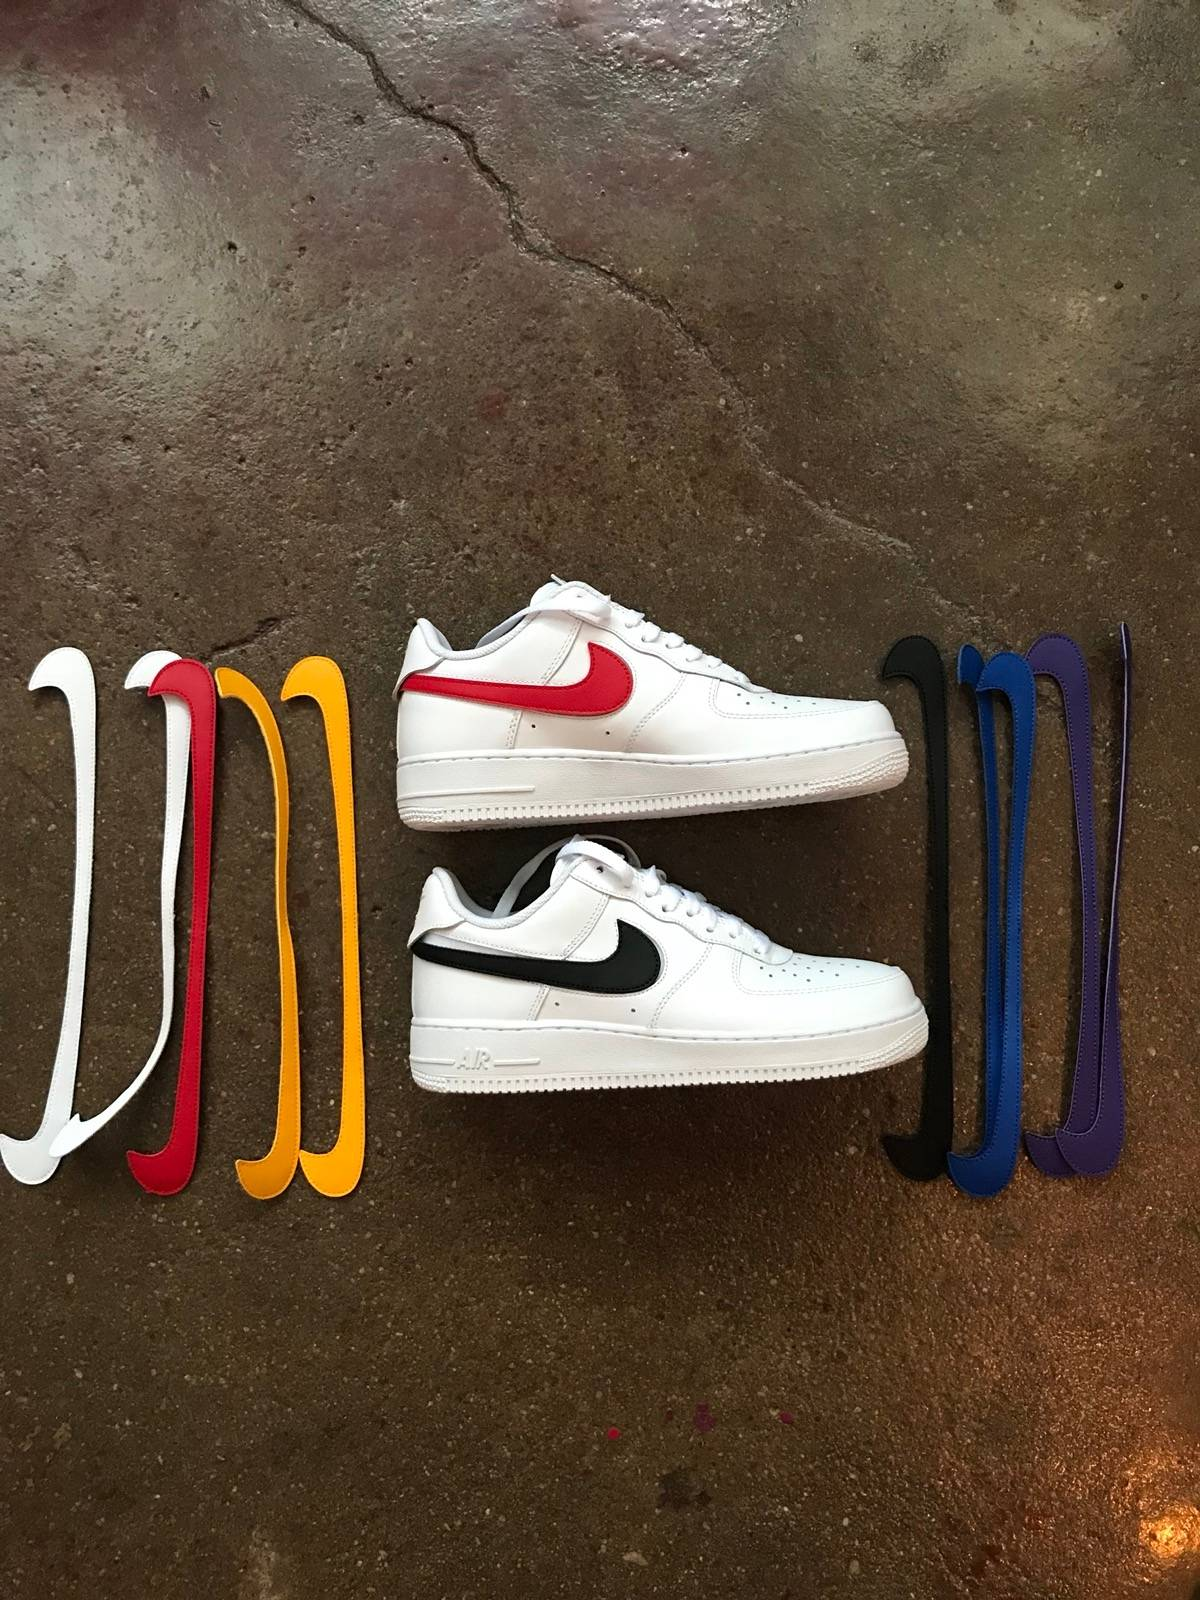 cheap for discount 17d67 dd770 Nike Nike Air Force 1 Low Swoosh Pack All Star 2018 White Size 8 $200